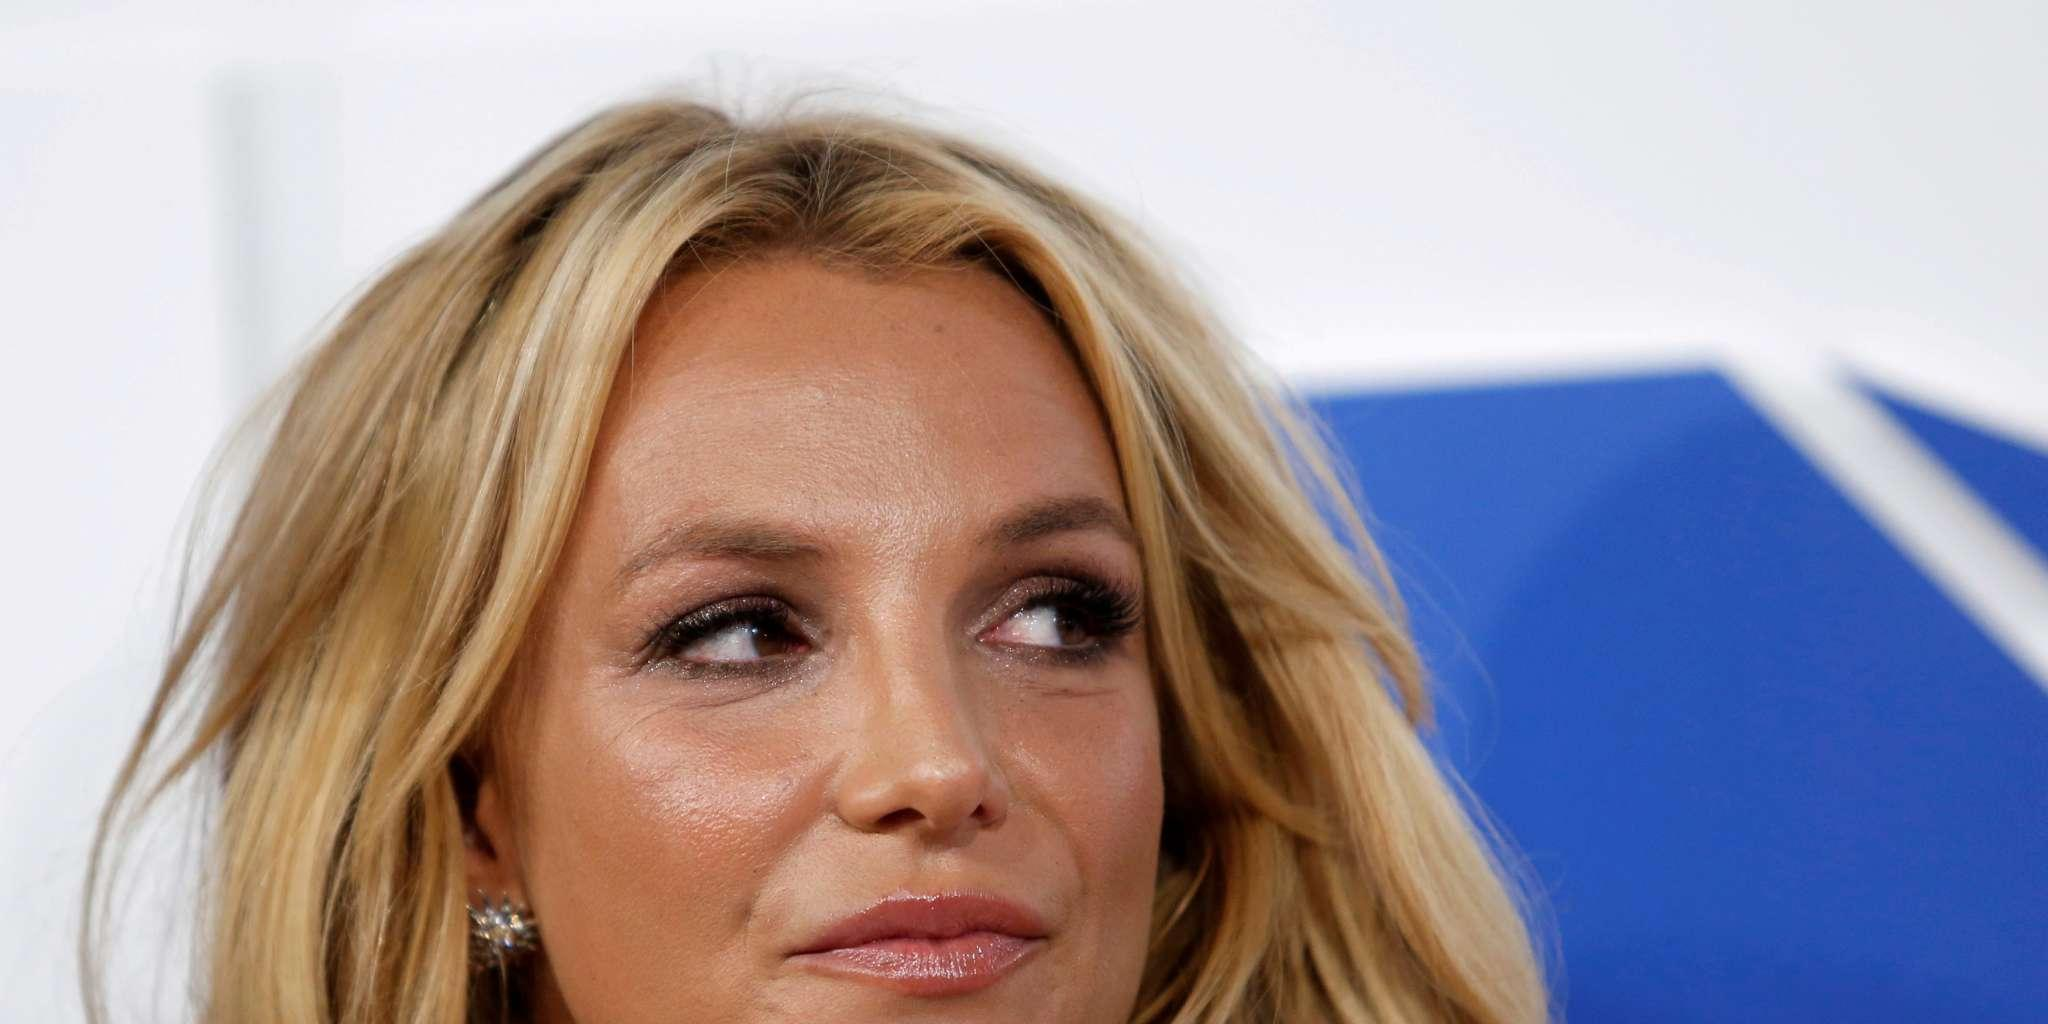 Britney Spears Is Reportedly 'Relieved' After Opening Up Publicly About Her Conservatorship Nightmare - Details!